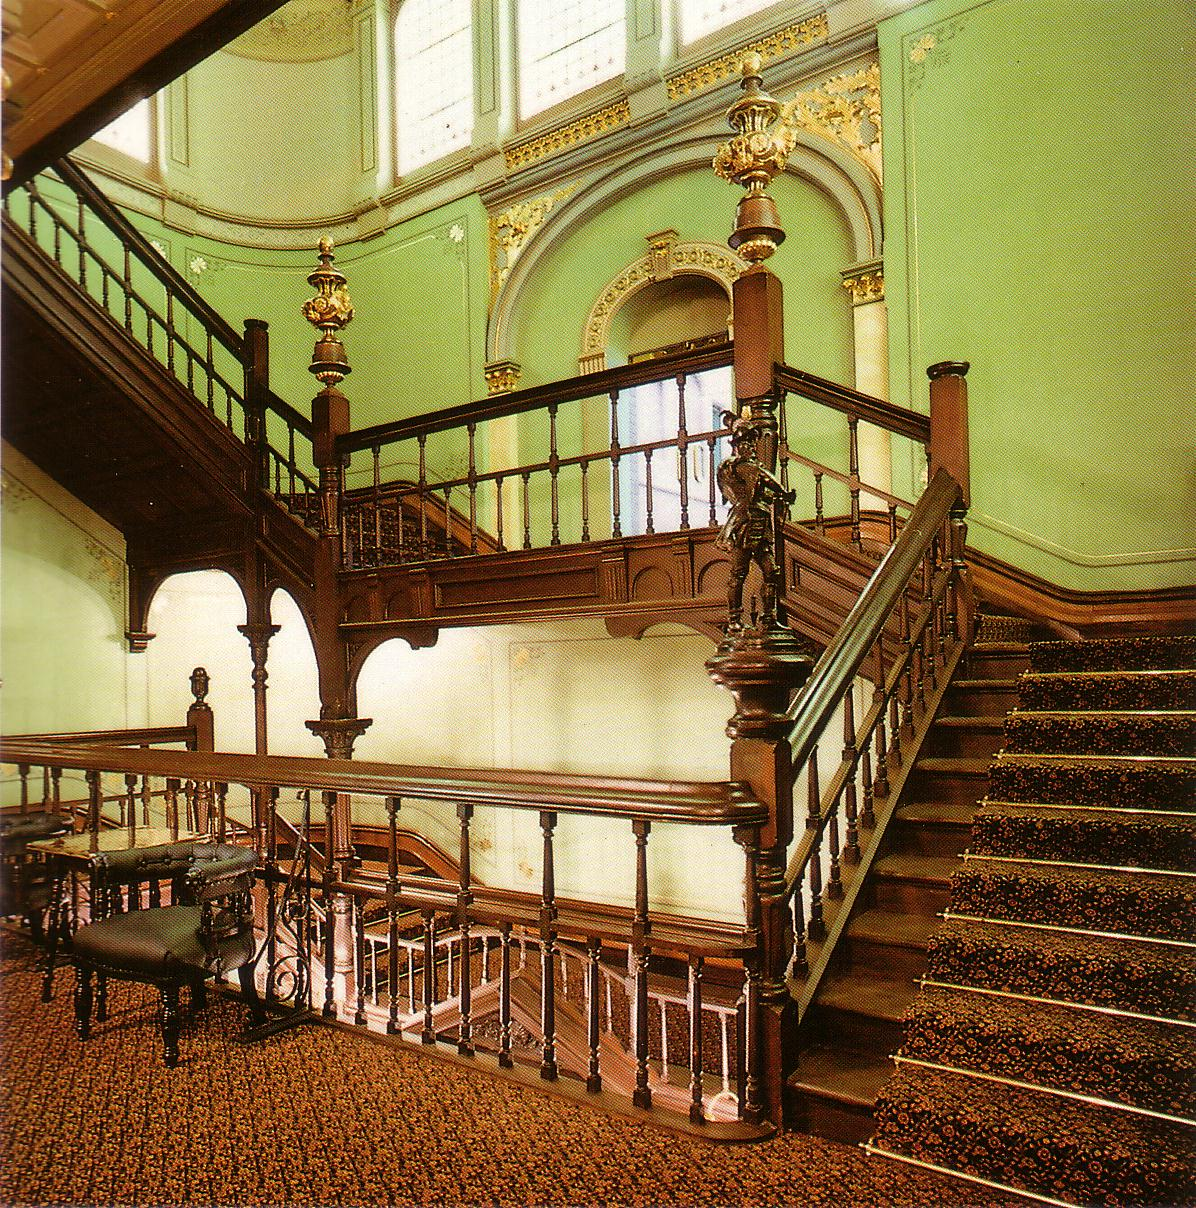 32Palace Hotel staircase.JPG